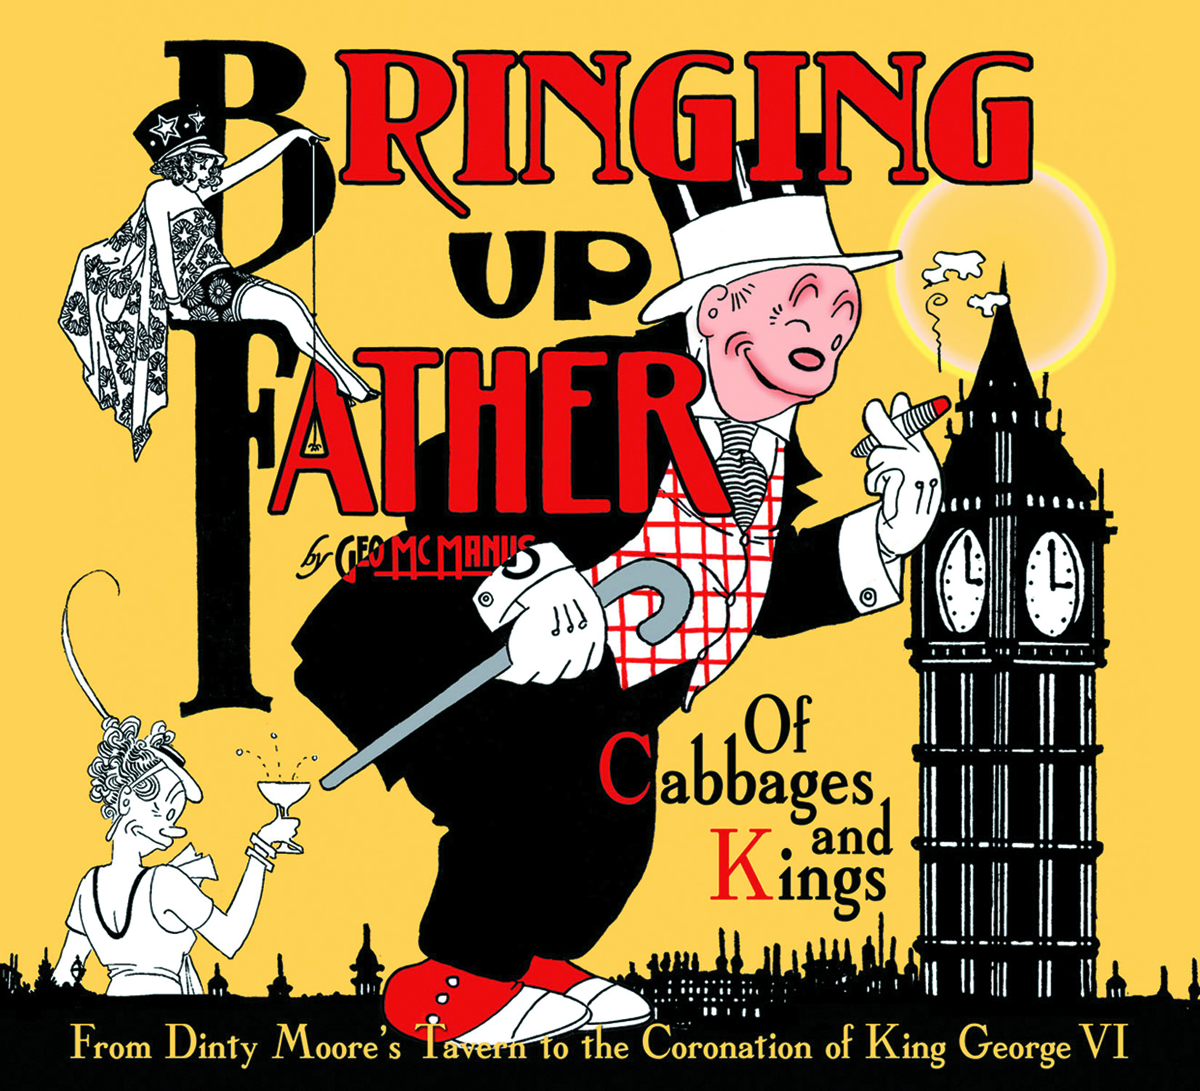 BRINGING UP FATHER HC VOL 02 CABBAGES & KINGS